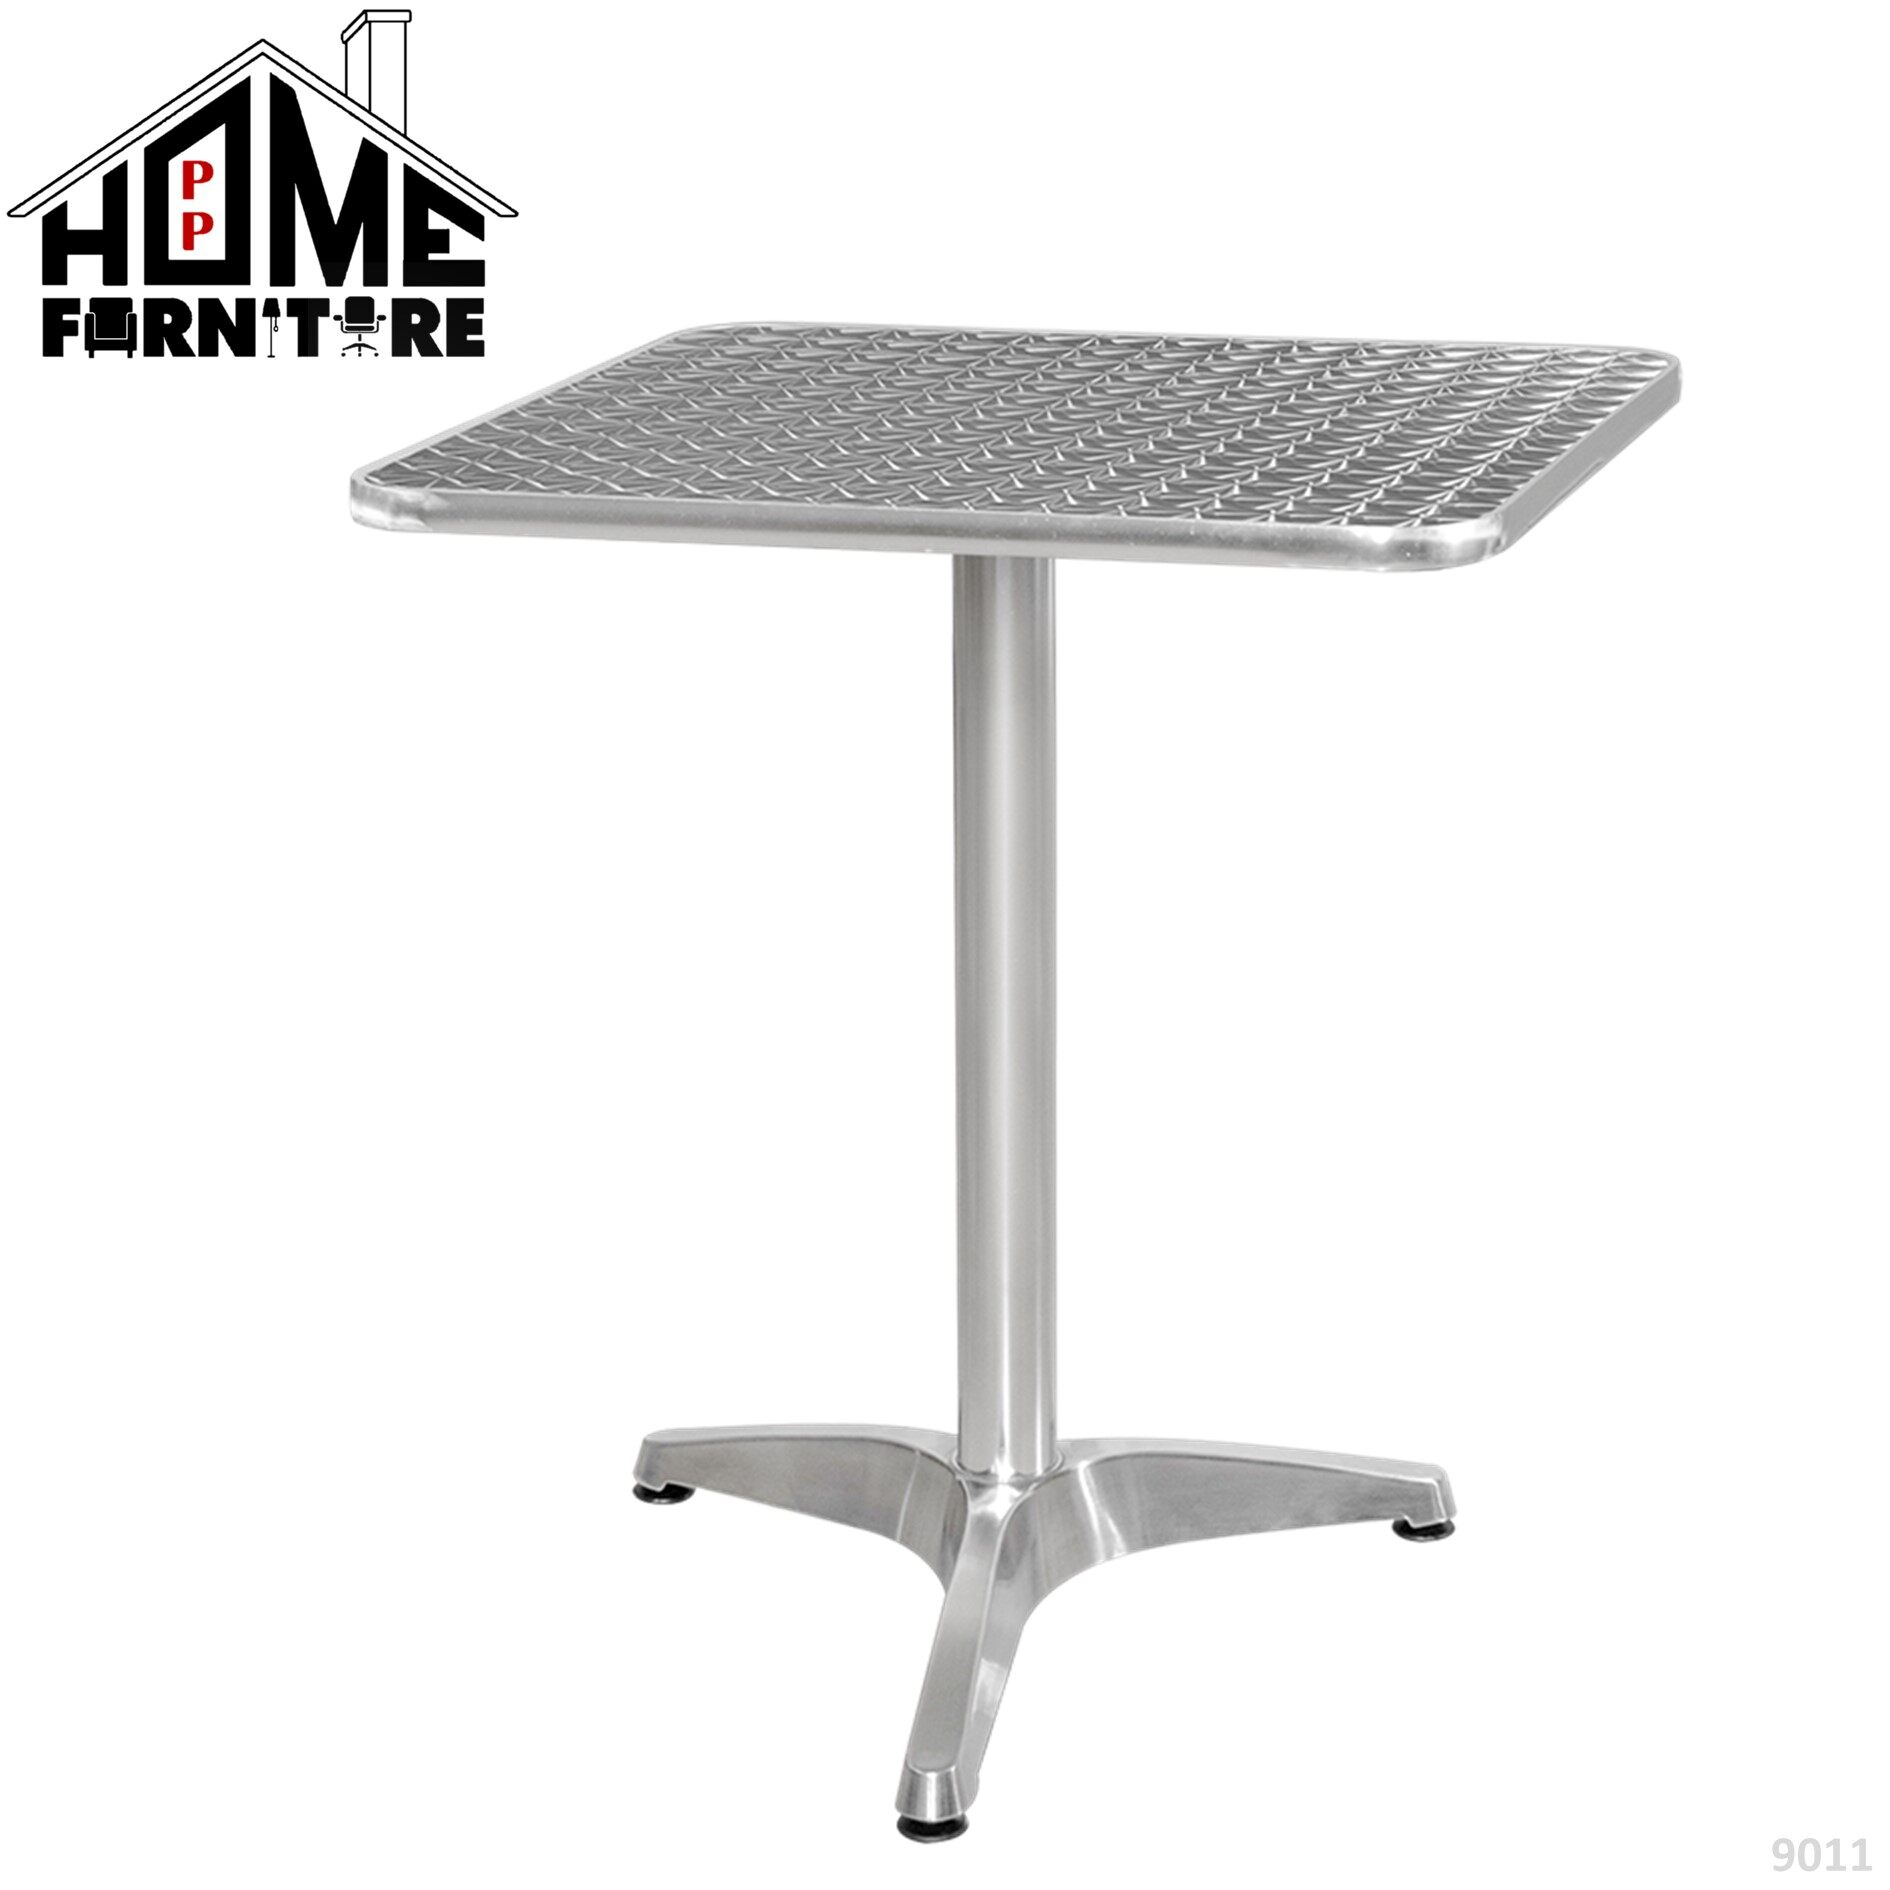 PP HOME Foldable table/ Metal table/Multipurpose table/Utility table/ Adjustable table/ Picnic table/ Outdoor table/ Banquet table/Outdoor furniture/ Stacking tableEvent table/ Catering table/ Garden table/ Meja lipat多功能折叠桌子9011